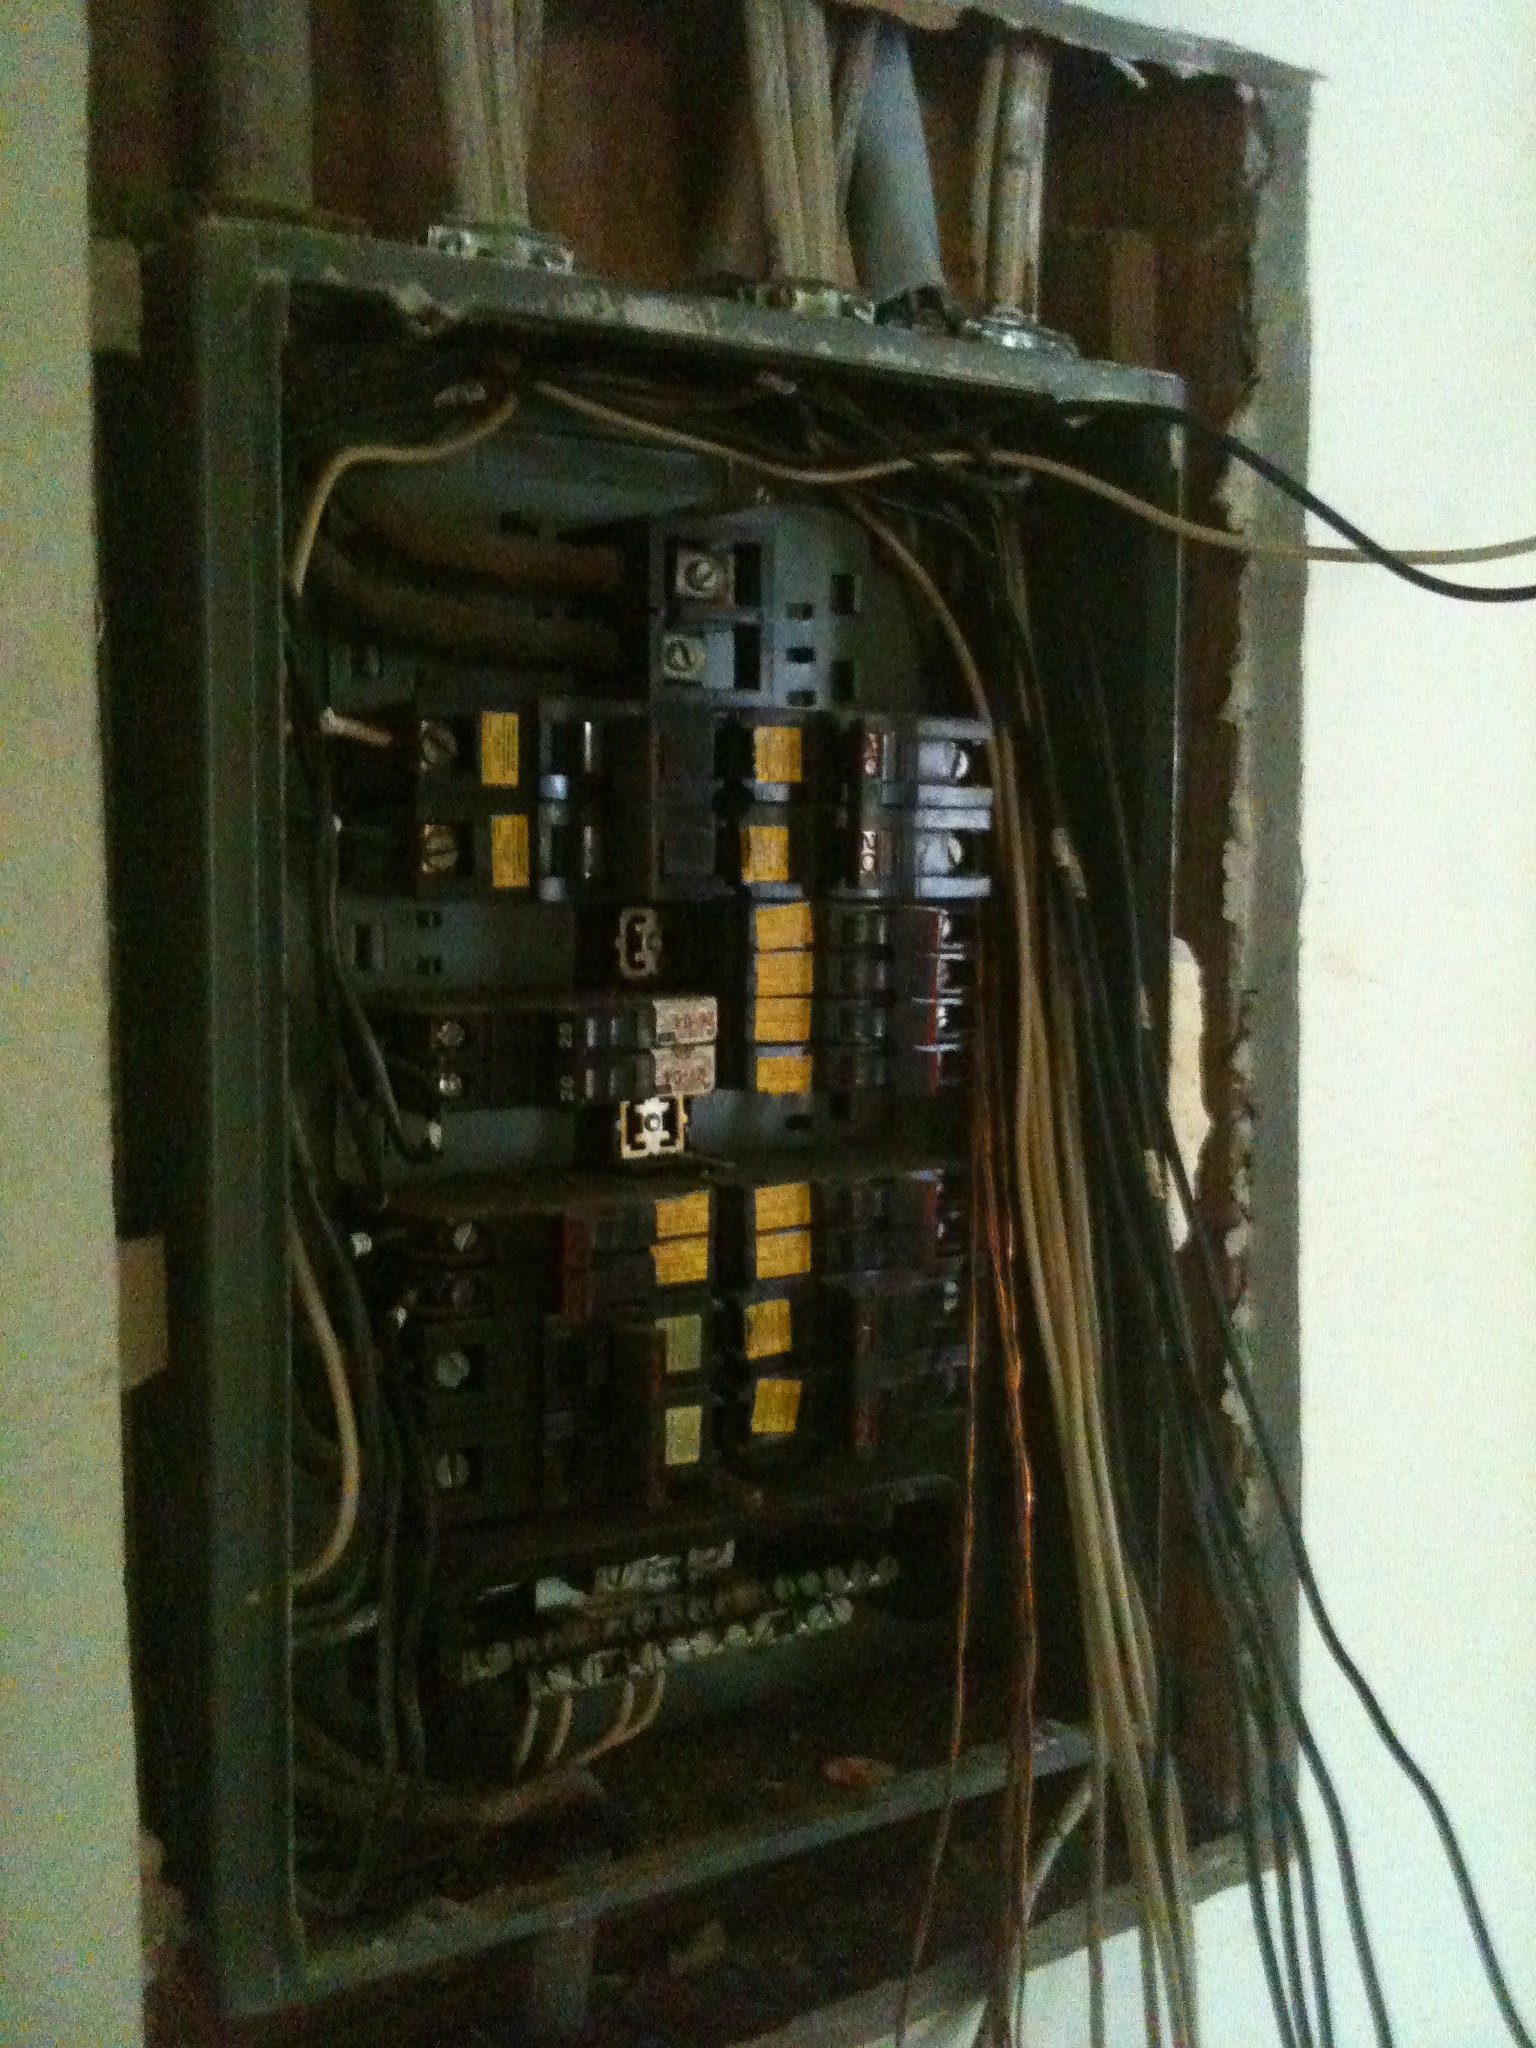 Replacing an old FPE panel. Most insurance companies require these panels to be replaced before writing a homeowners policy.